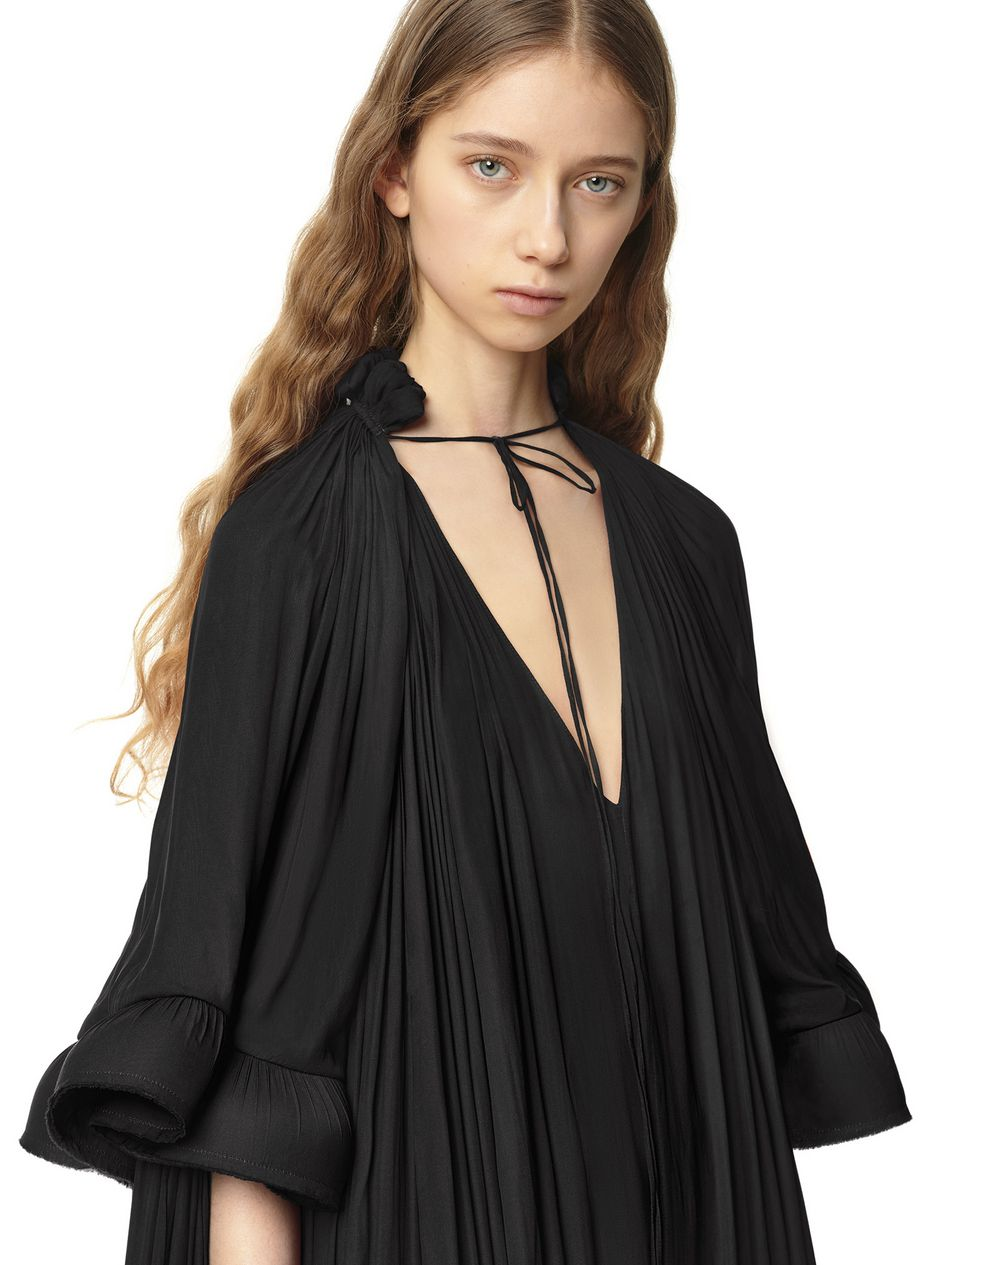 LONG SHORT-SLEEVED RUFFLE GOWN - Lanvin